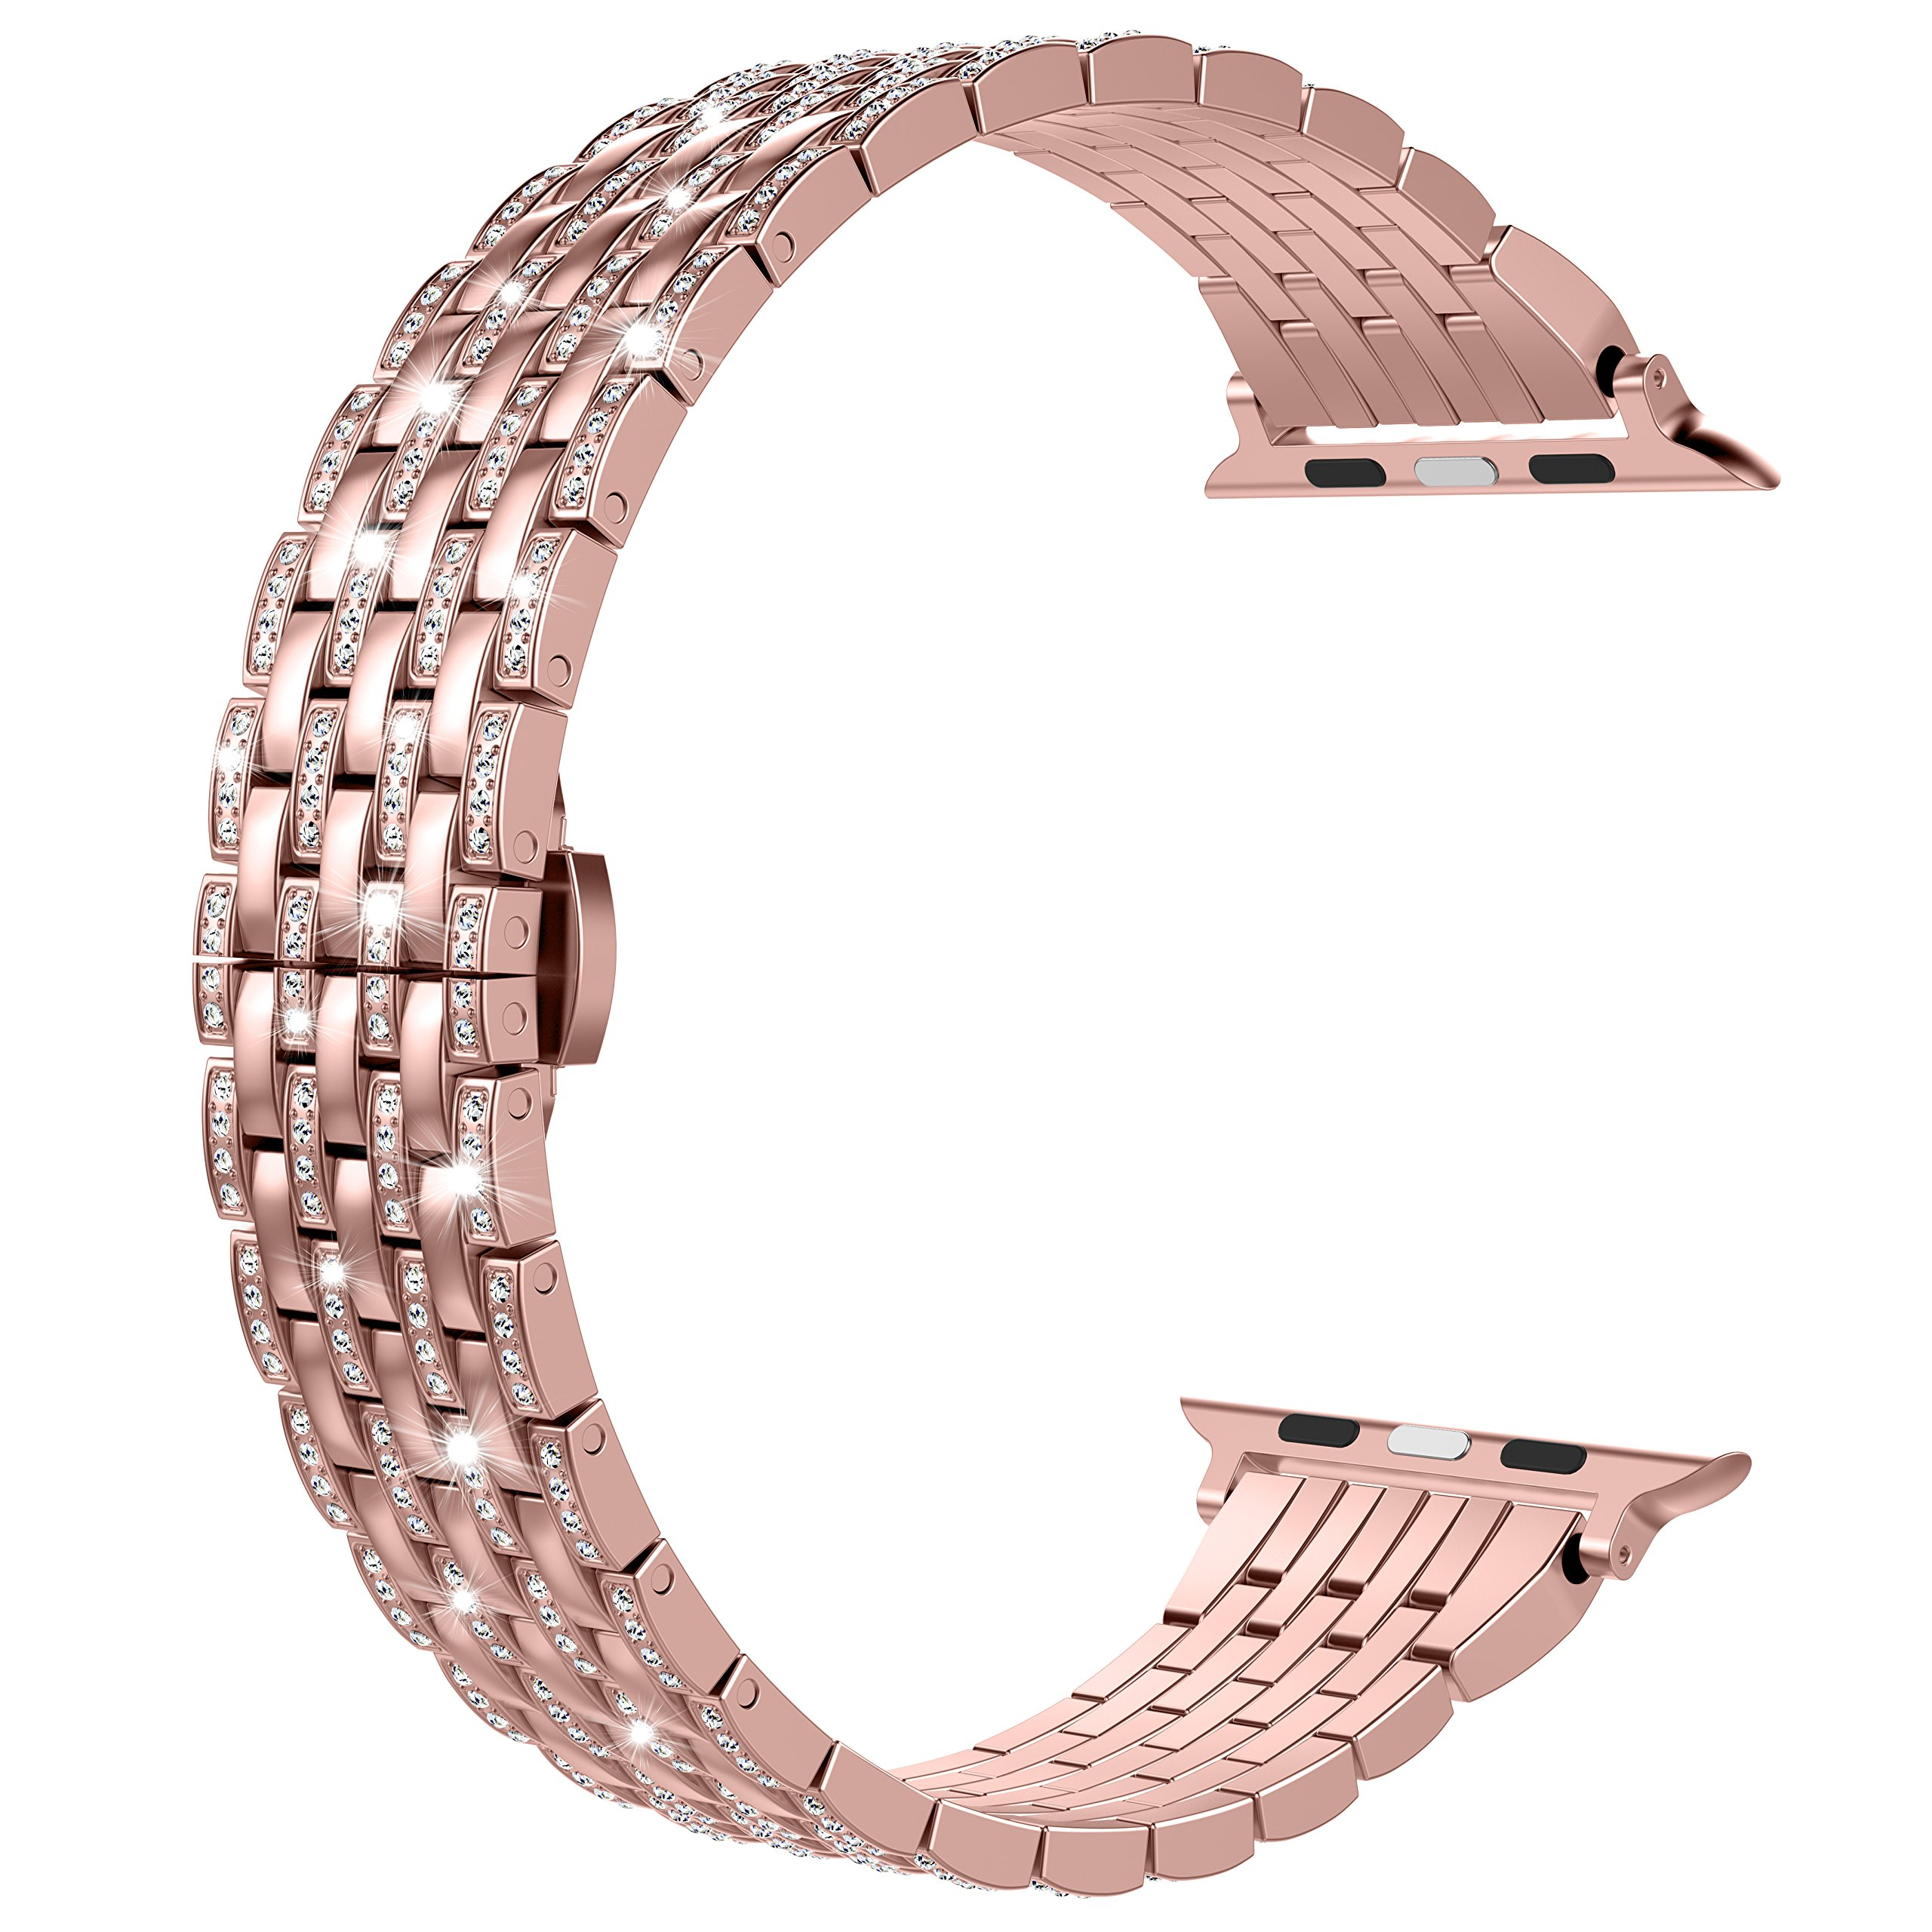 Wearlizer Rose Gold Compatible with Apple Watch Band 42mm 44mm iWatch Luxury Bling Rhinestone Diamond Crystal Strap Lightweight Aluminum Wristband Dressy Bracelet Replacement Series 4 3 2 1 Edition